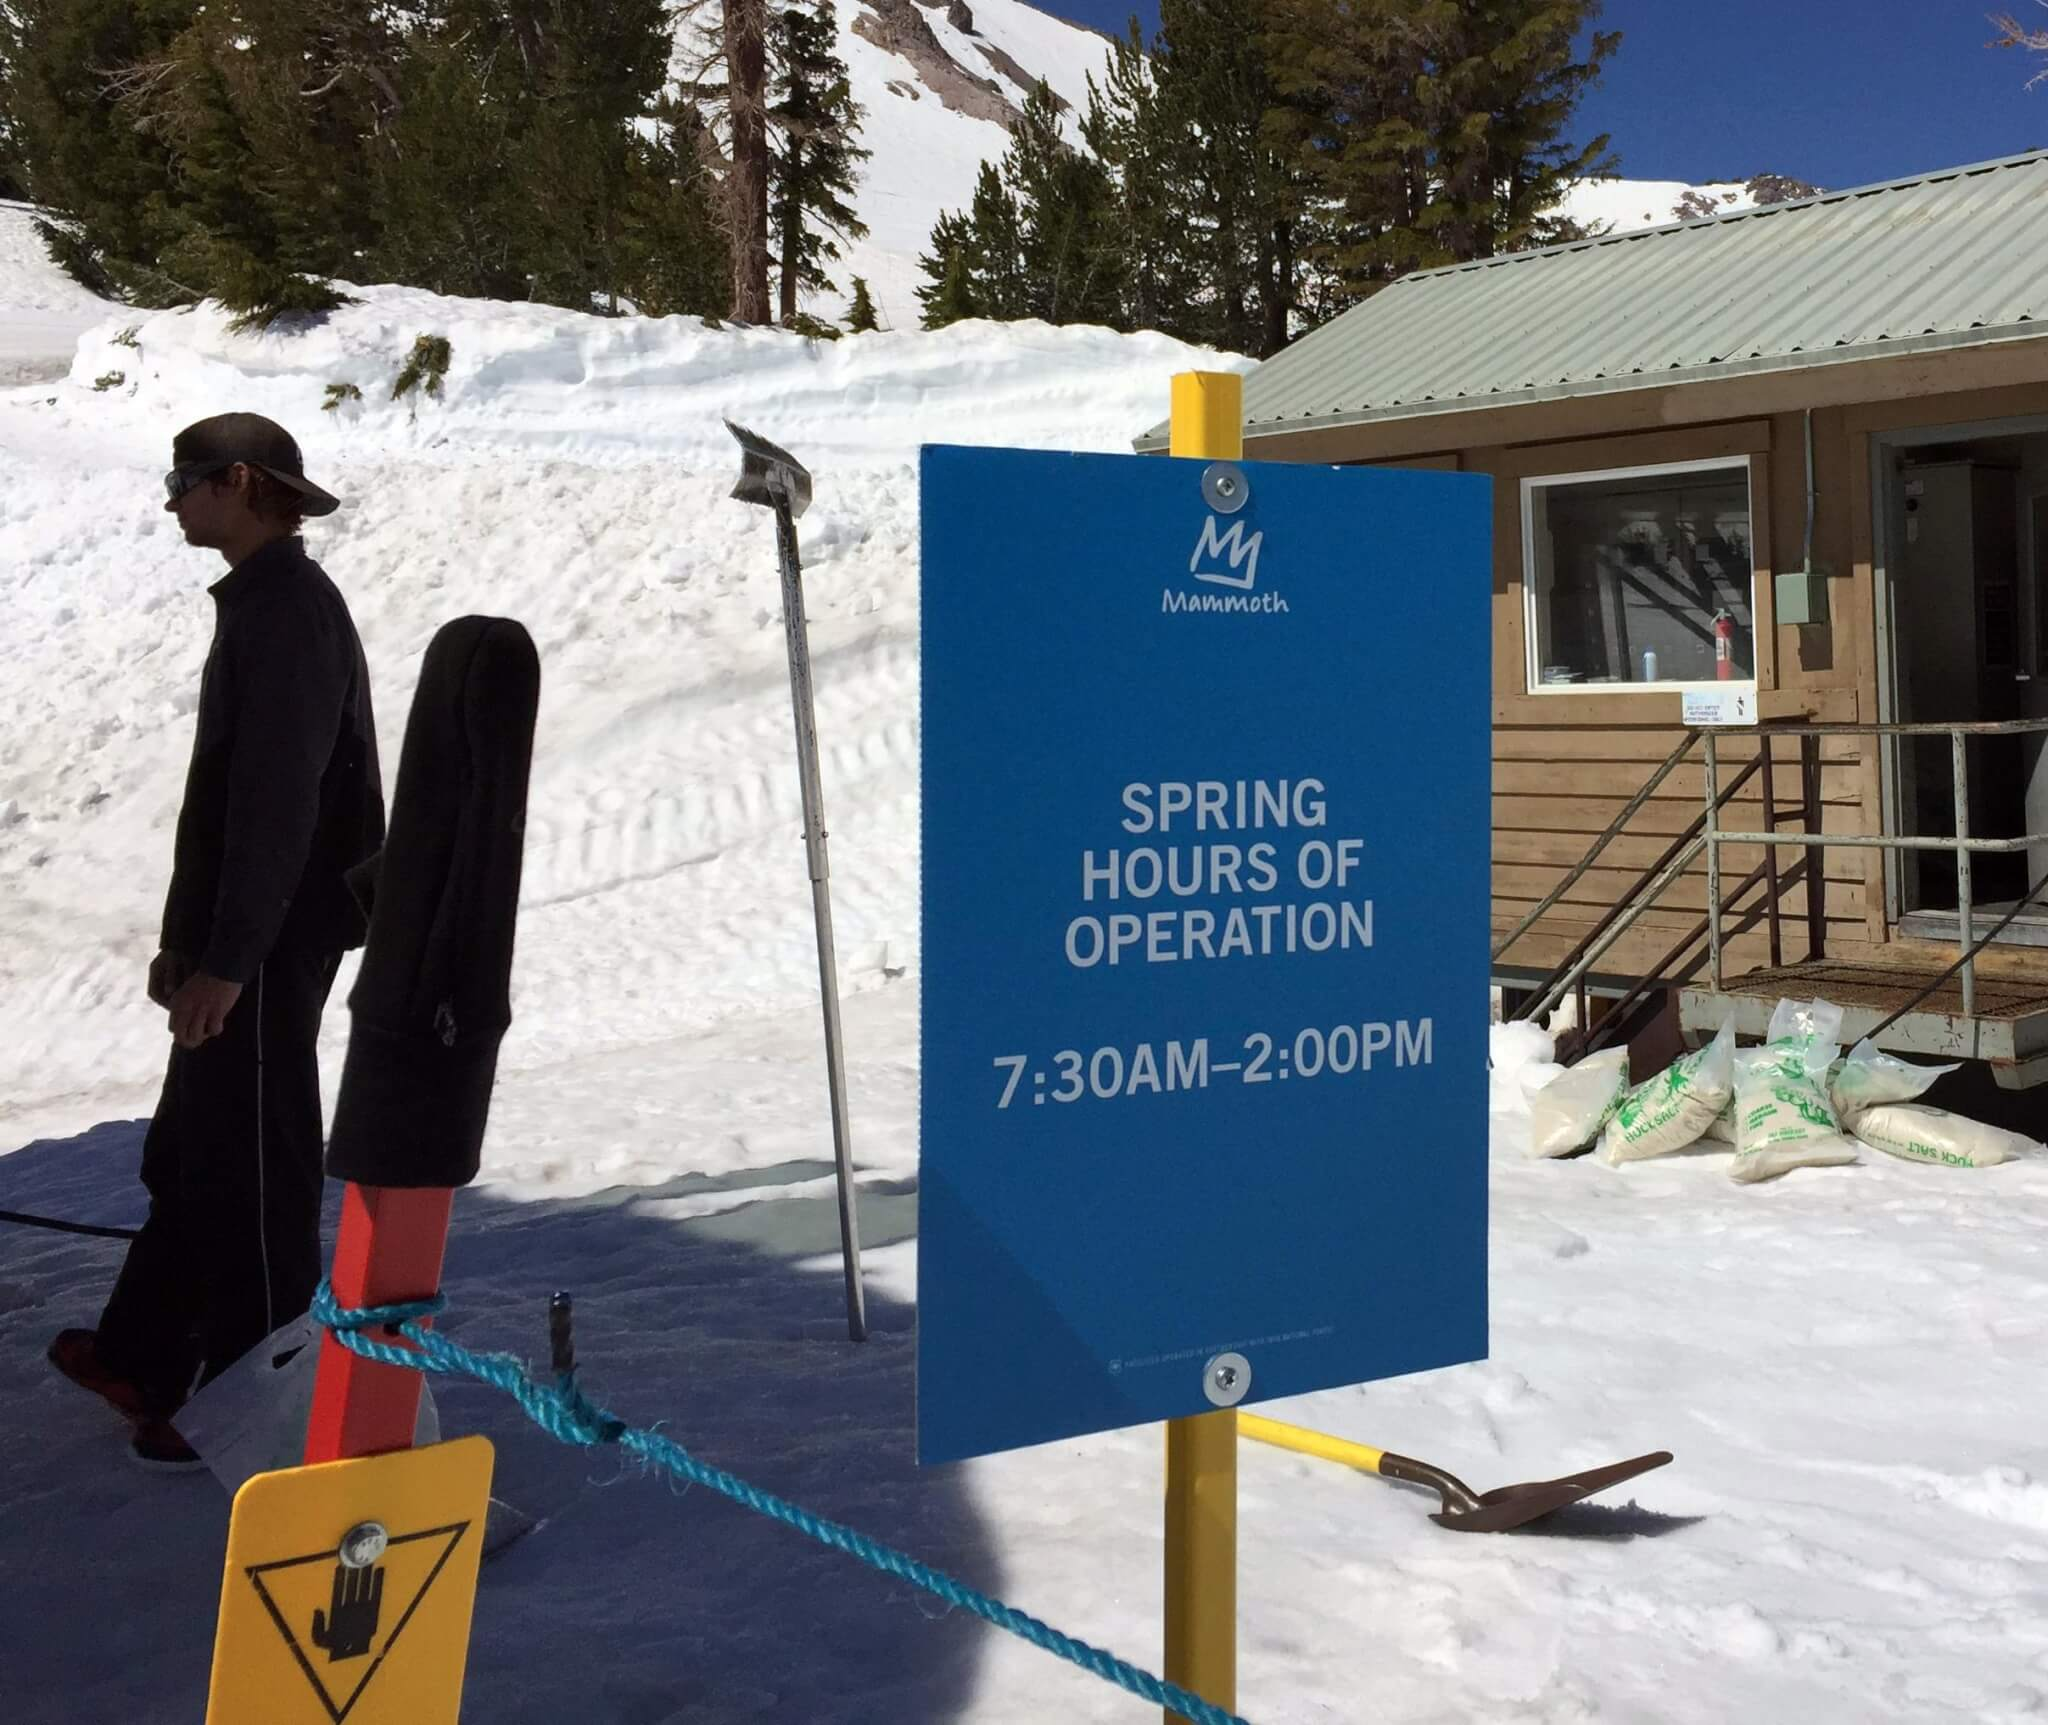 Spring hours of operation sign at Mammoth Mountain